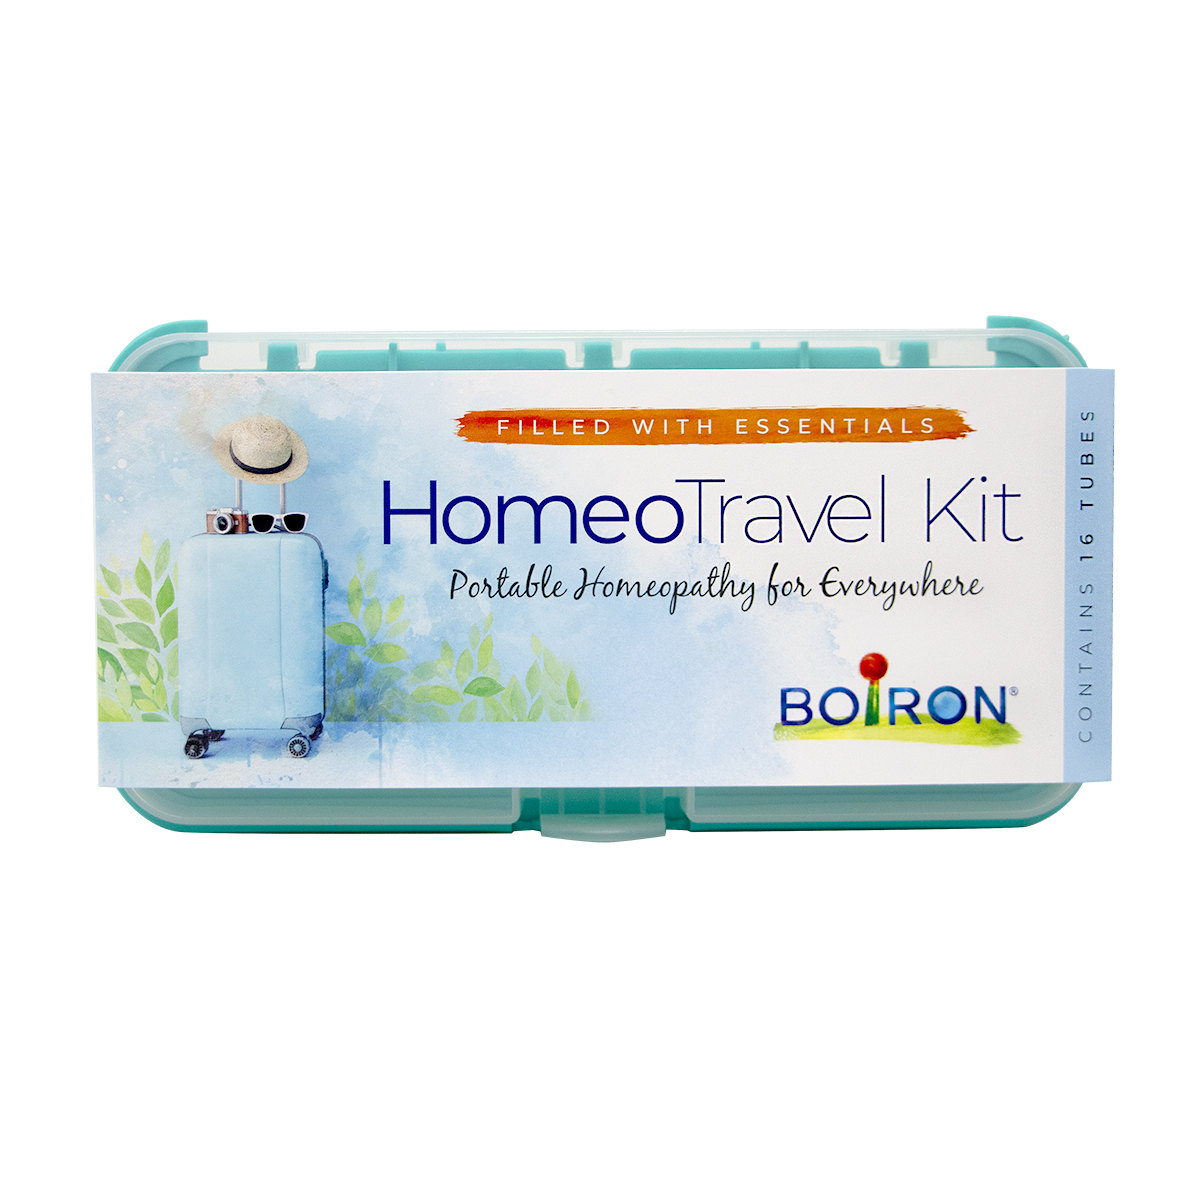 New-Homeotravel-kit-05-